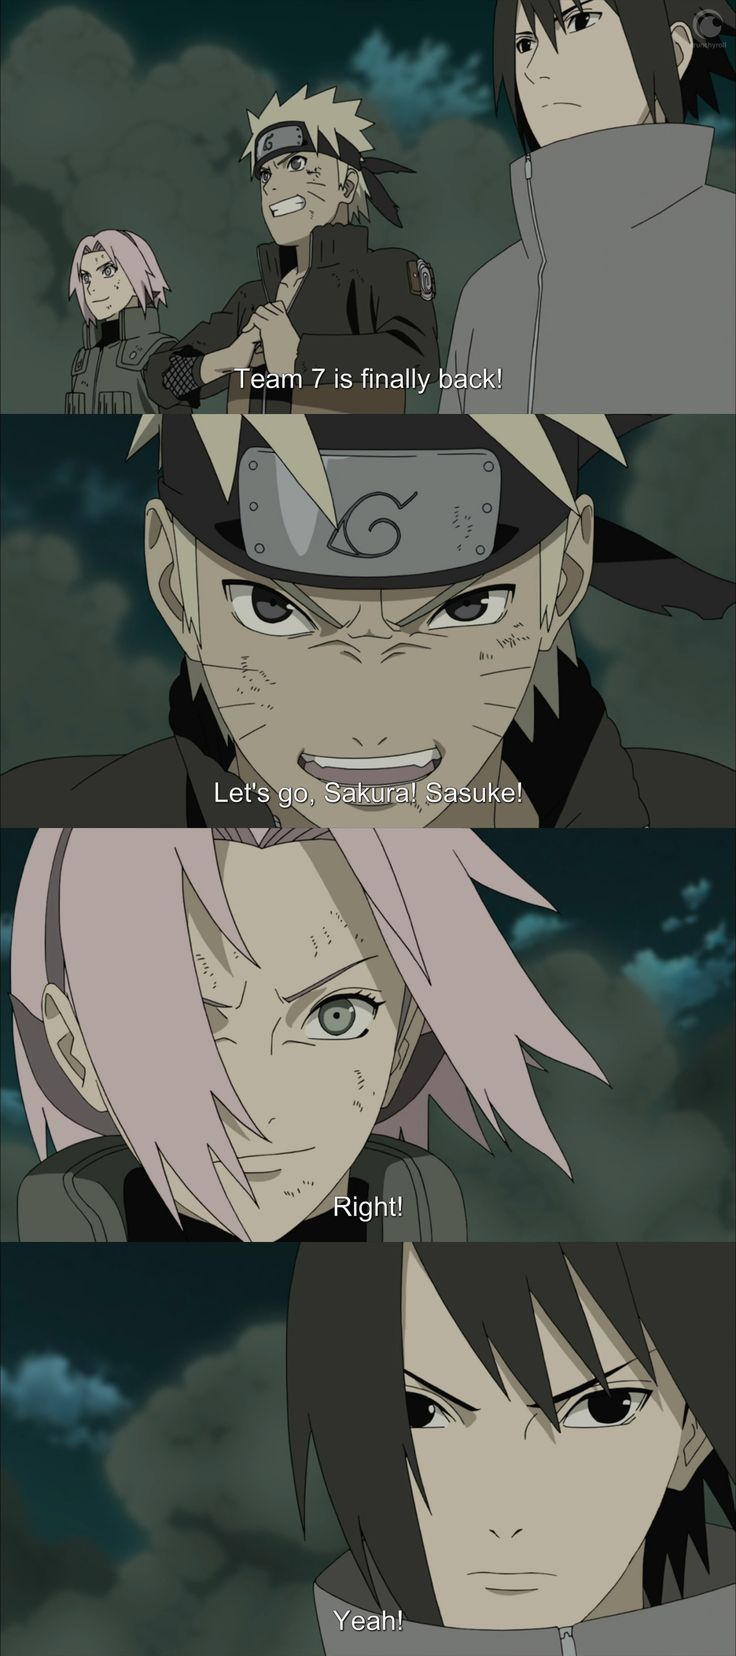 Naruto Shippuden - Team 7 the happiest day of my life ♥ when team 7 was back together ♥